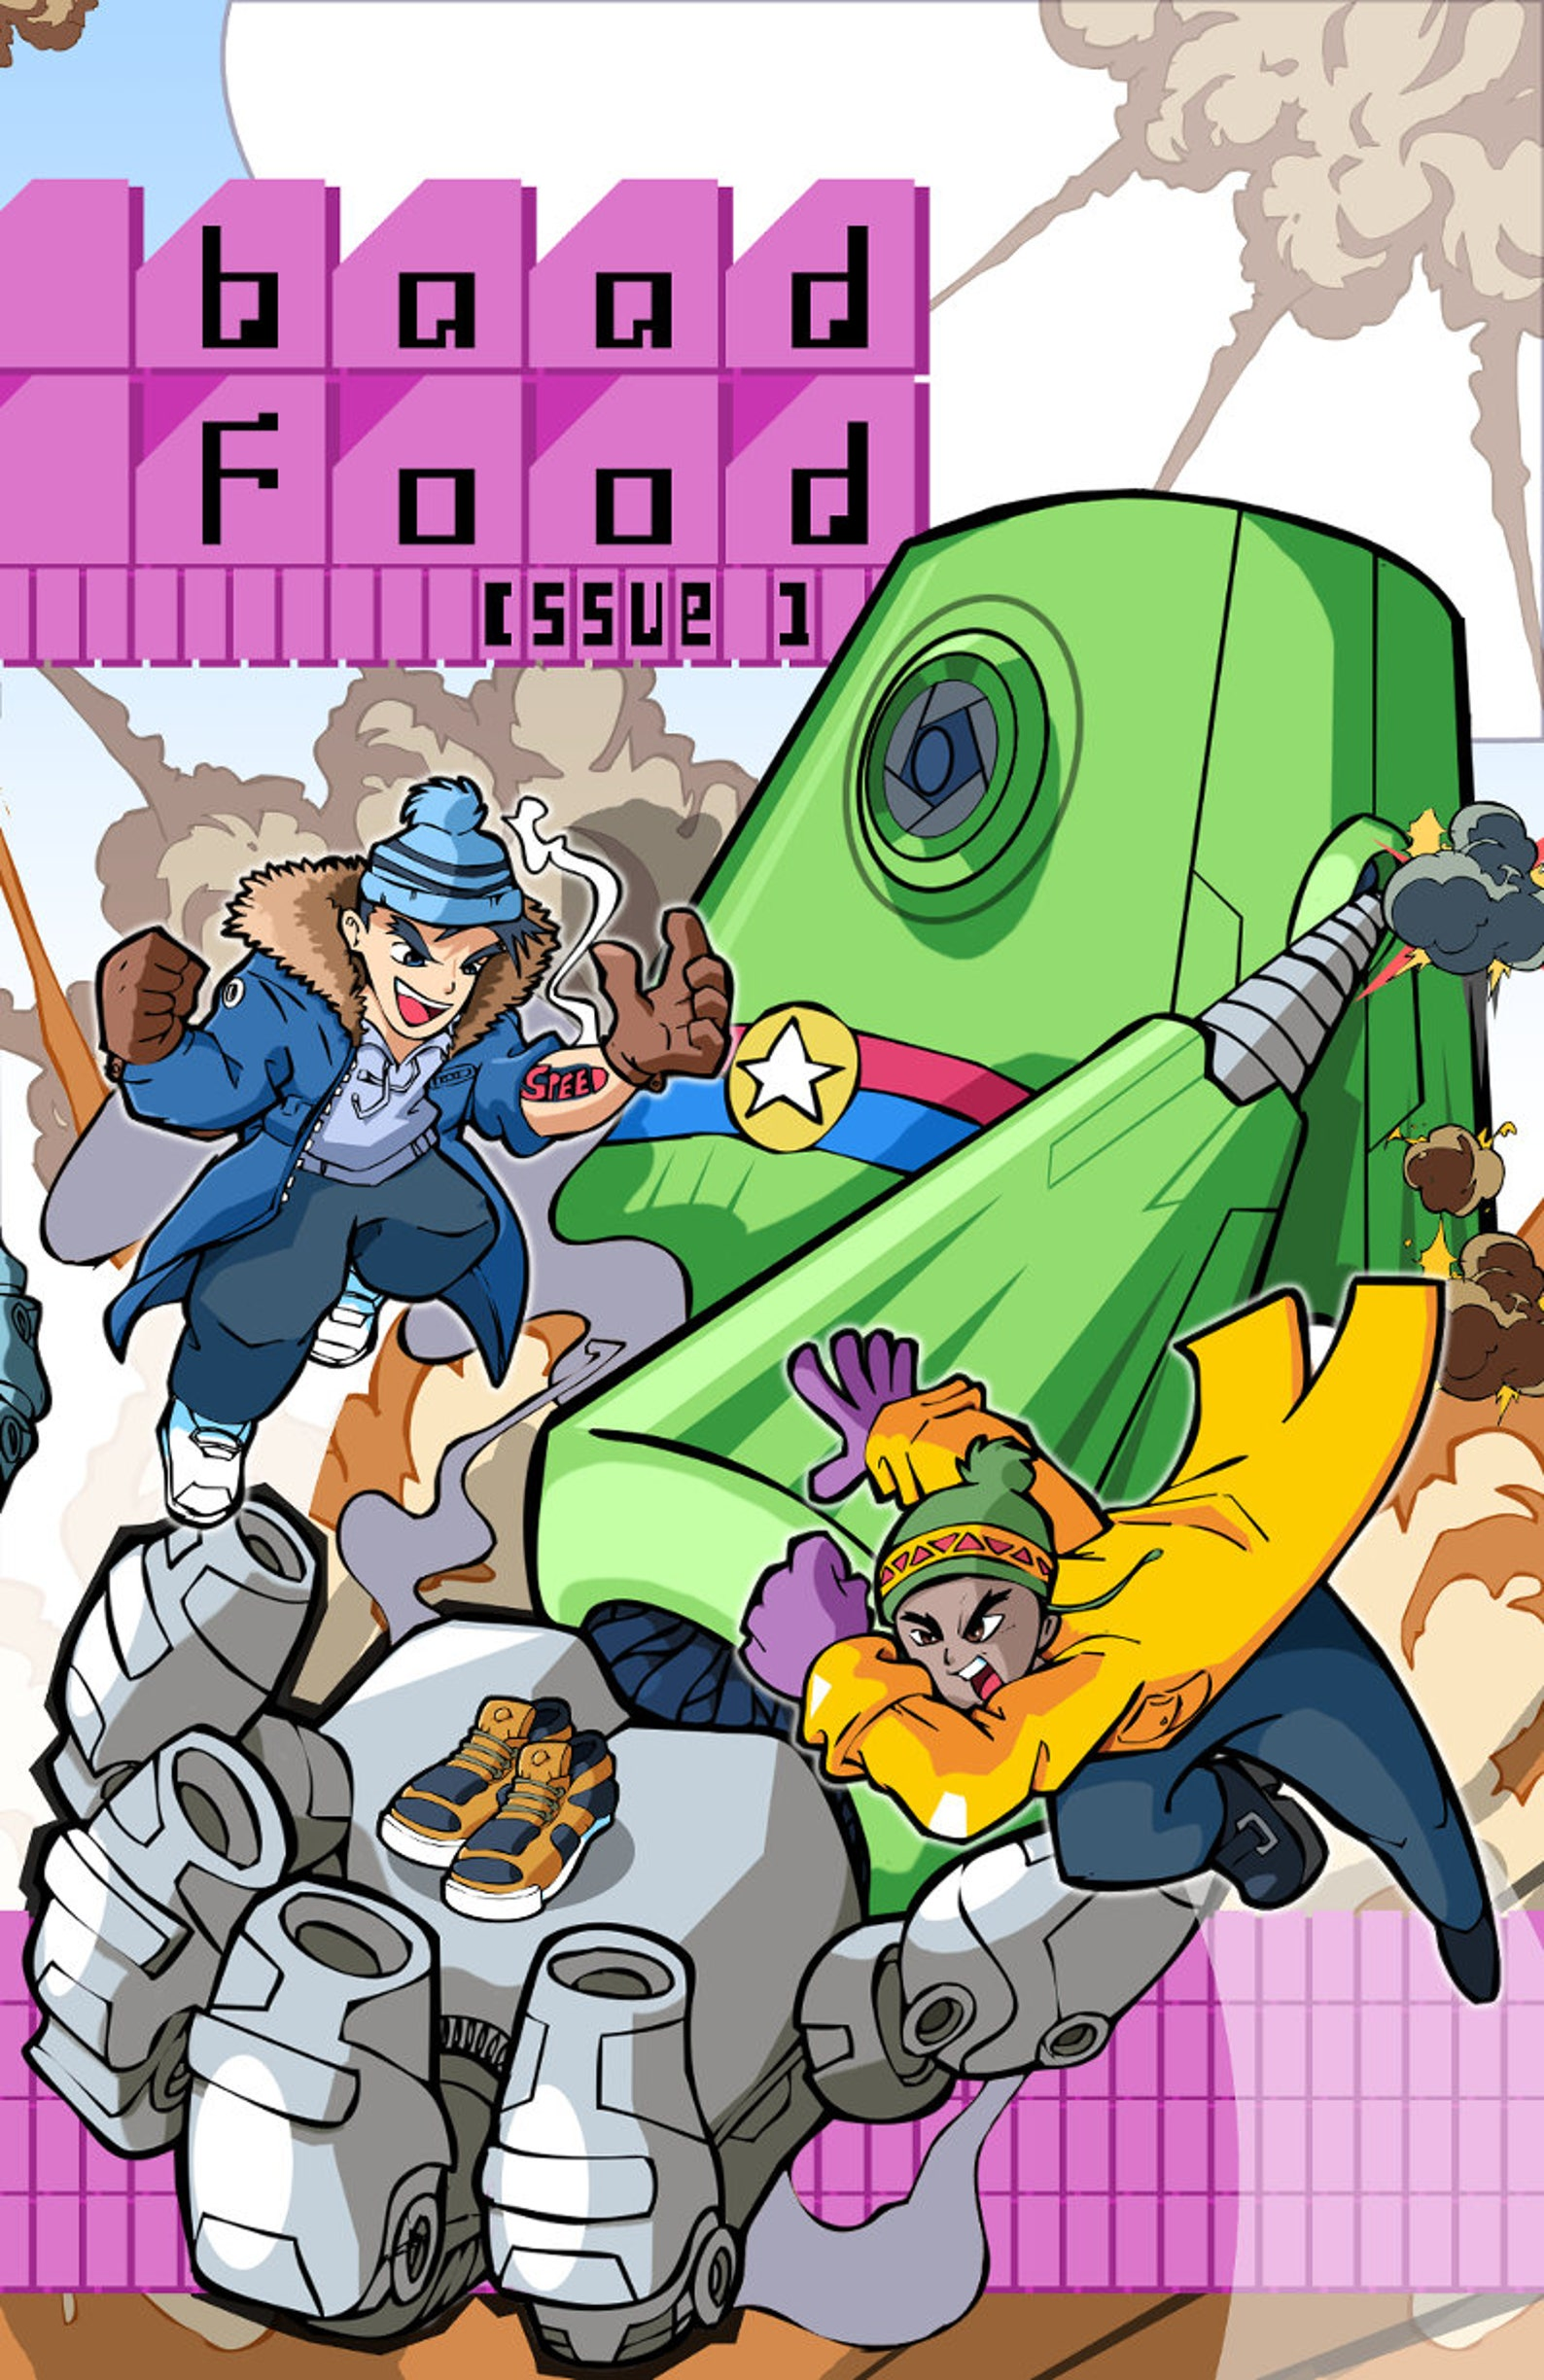 Comic Book BaadFood 1 Variant Cover Sci-Fi Indie Series w